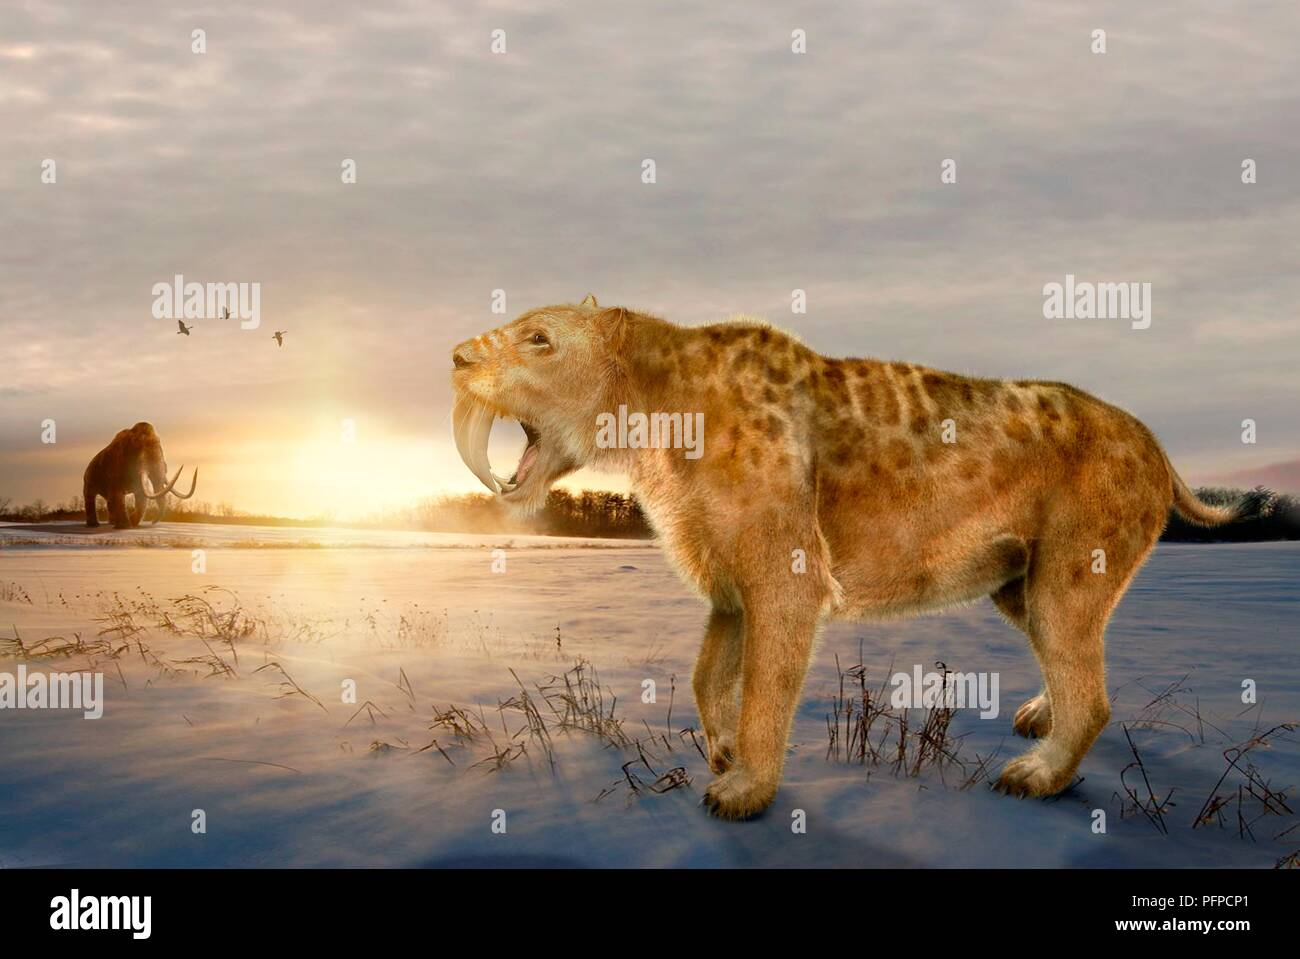 A prehistoric scene with a smilodon (early sabre-toothed cat) in the foreground and a mammoth in the distance - Stock Image